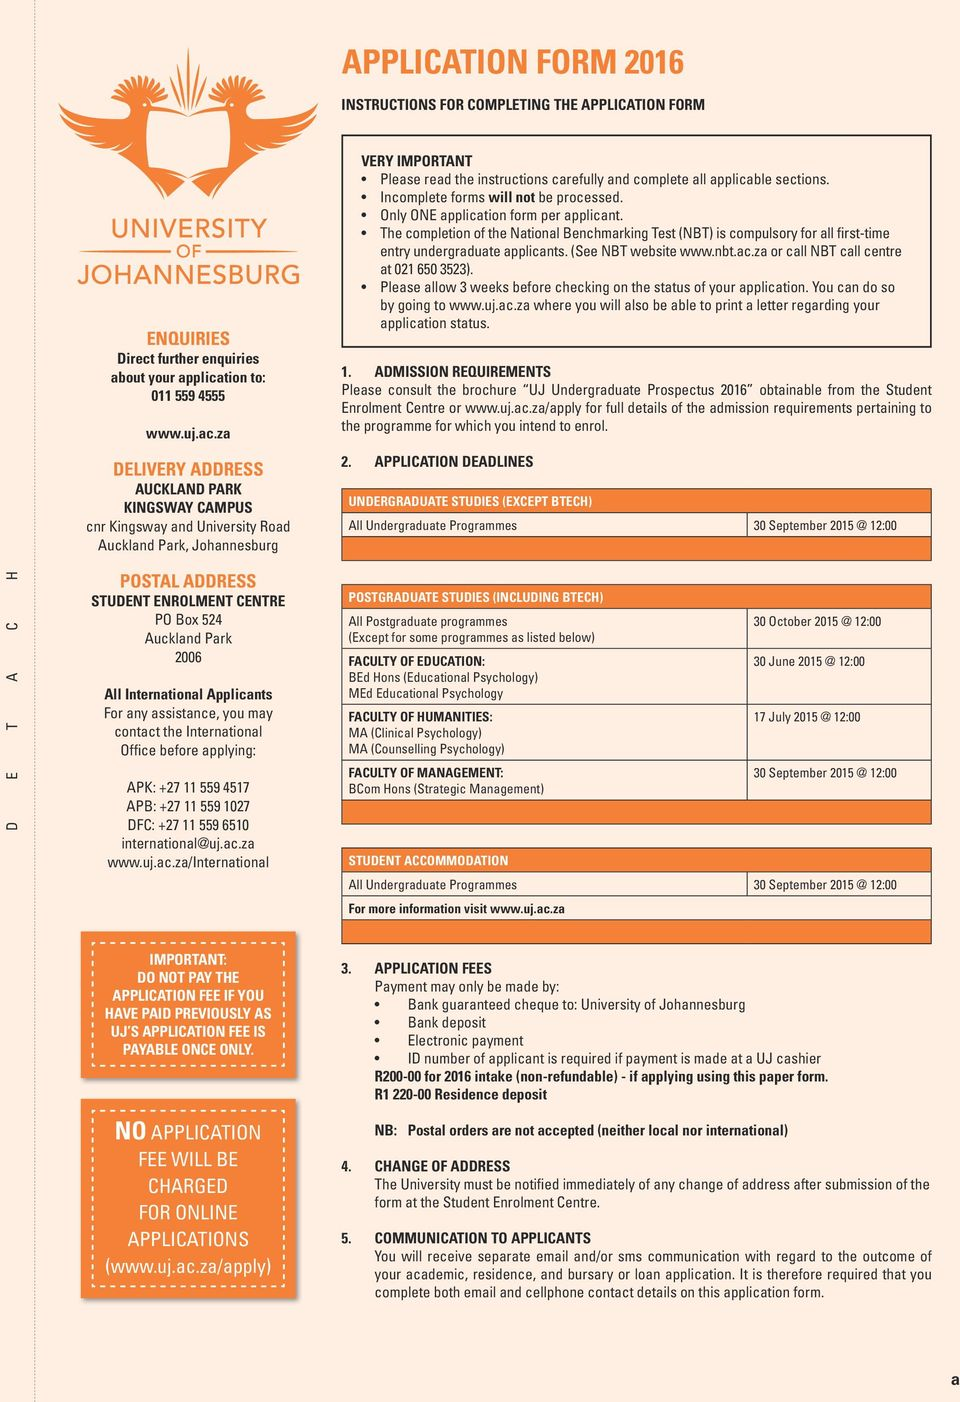 Applicants For any assistance, you may contact the International Office before applying: APK: +27 11 559 4517 APB: +27 11 559 1027 DFC: +27 11 559 6510 international@uj.ac.za www.uj.ac.za/international VERY IMPORTANT Please read the instructions carefully and complete all applicable sections.